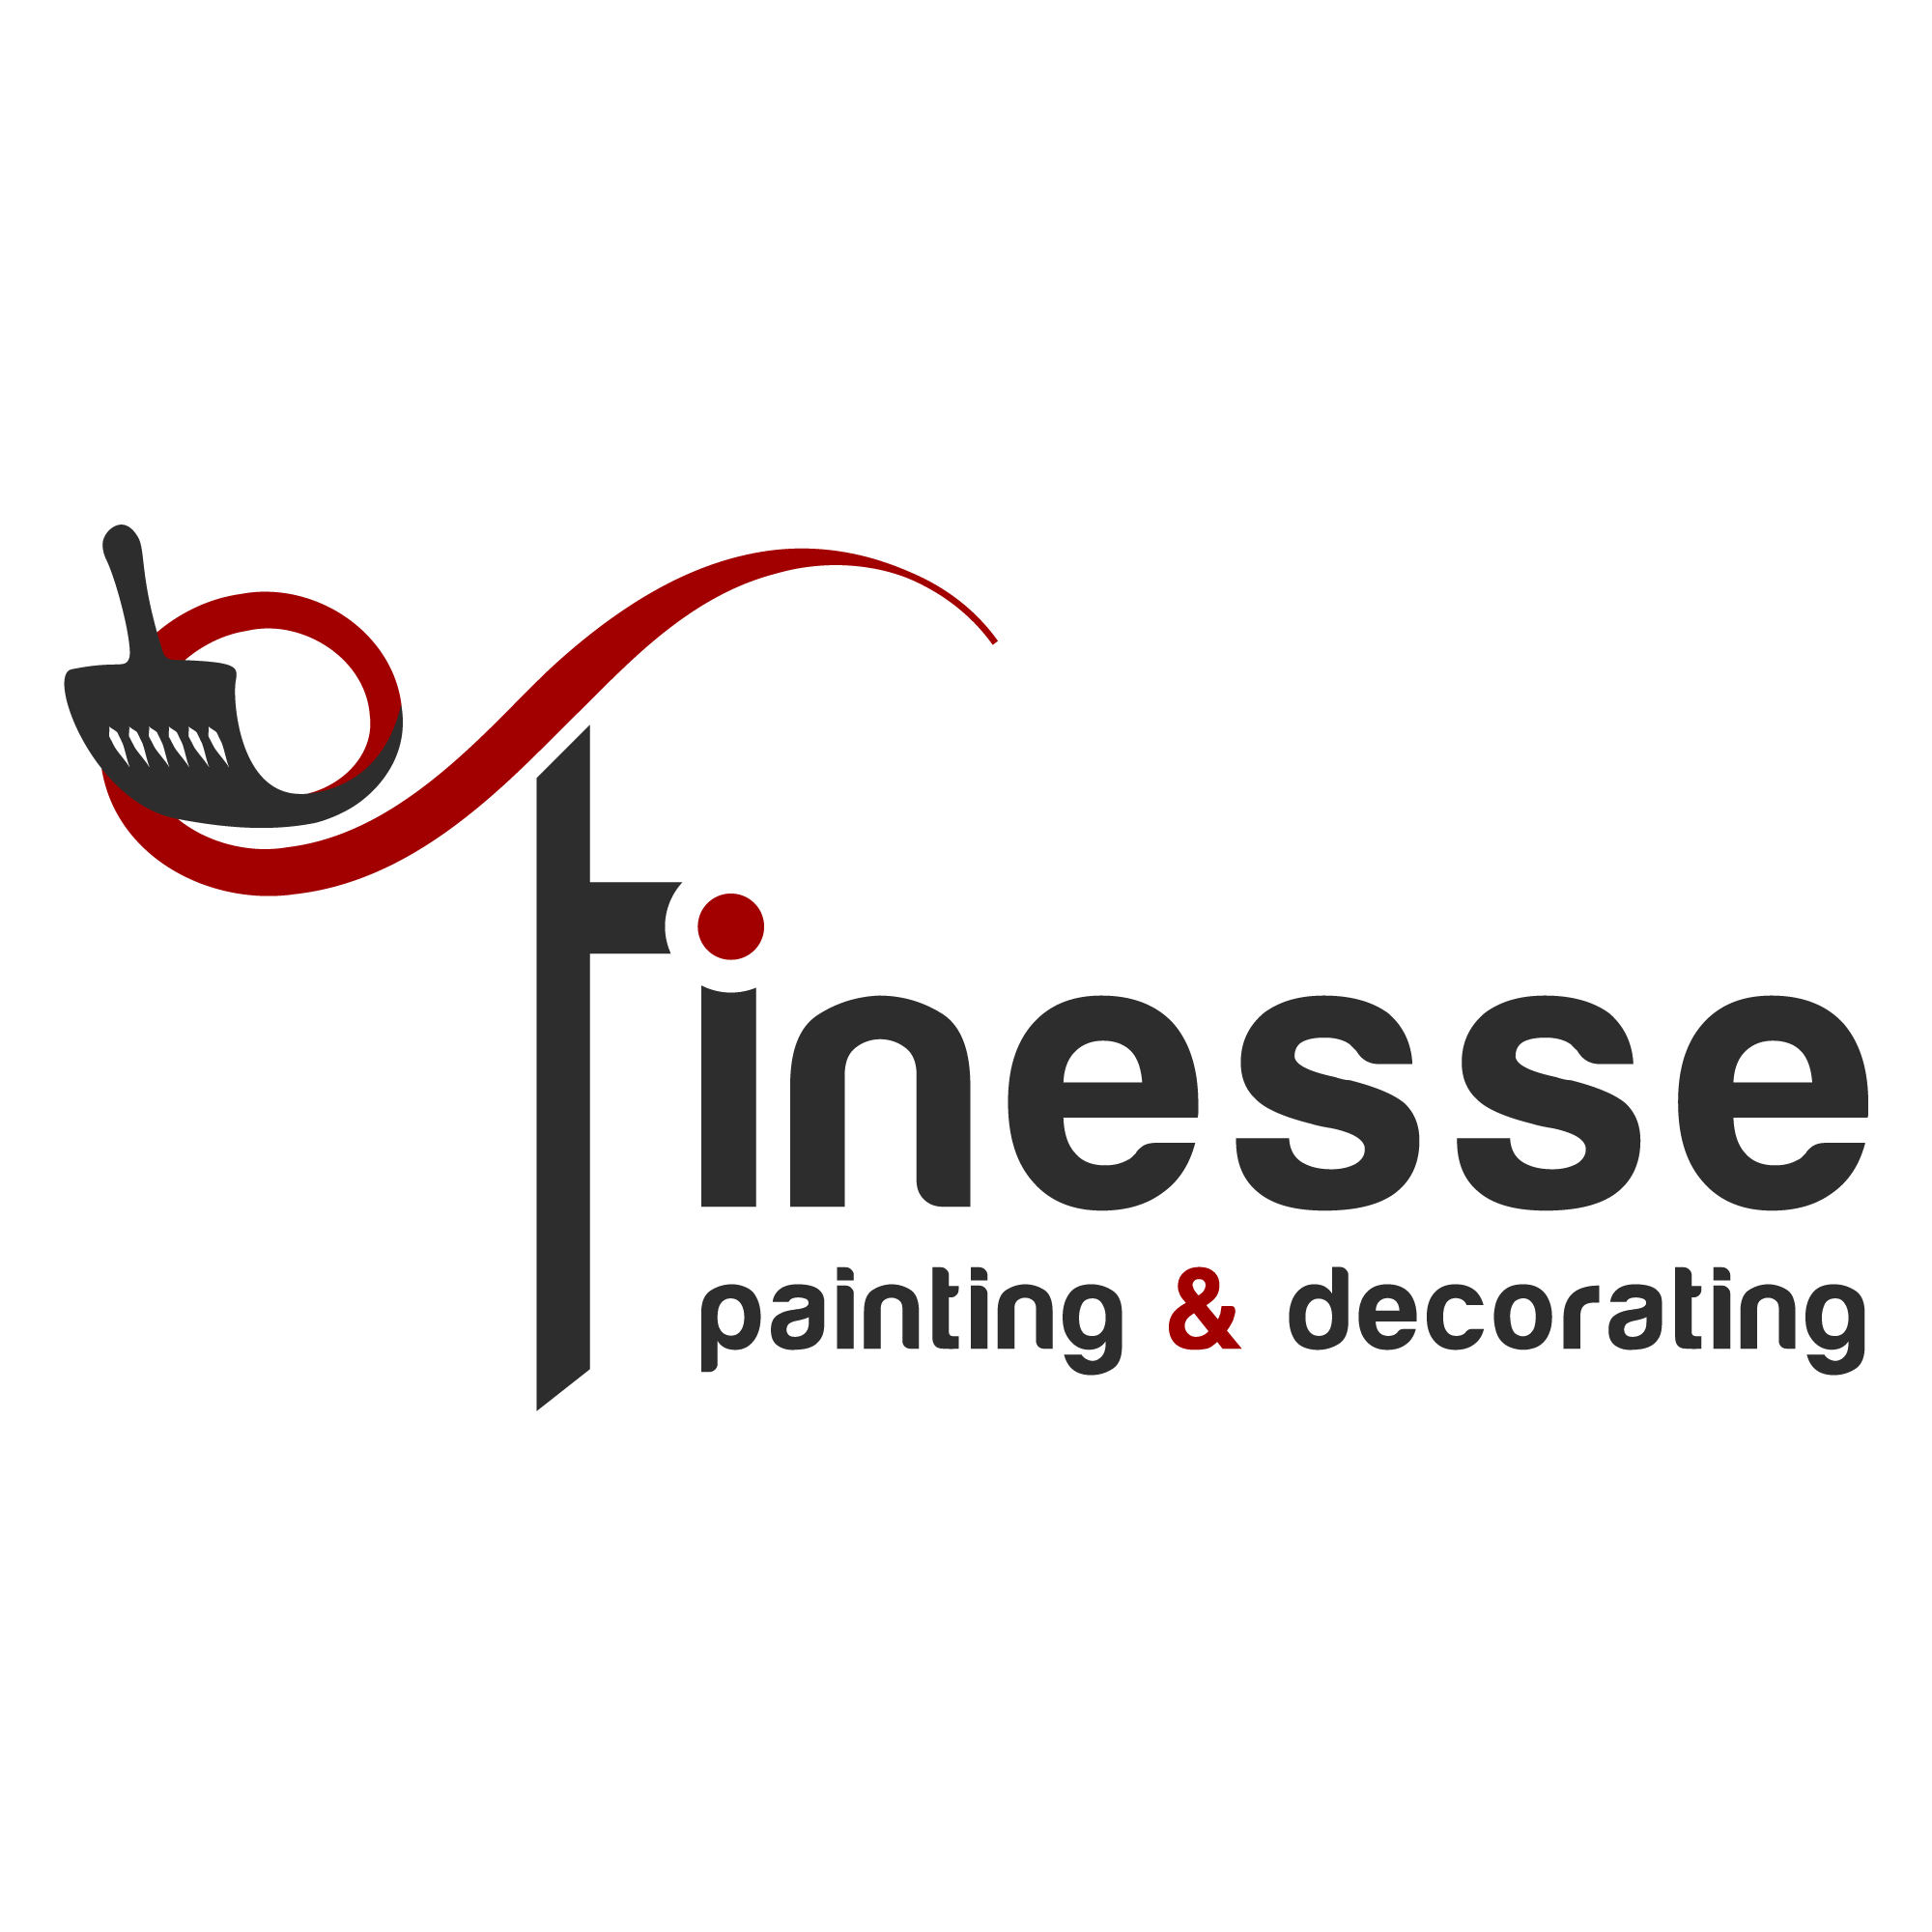 Finesse-logo.png